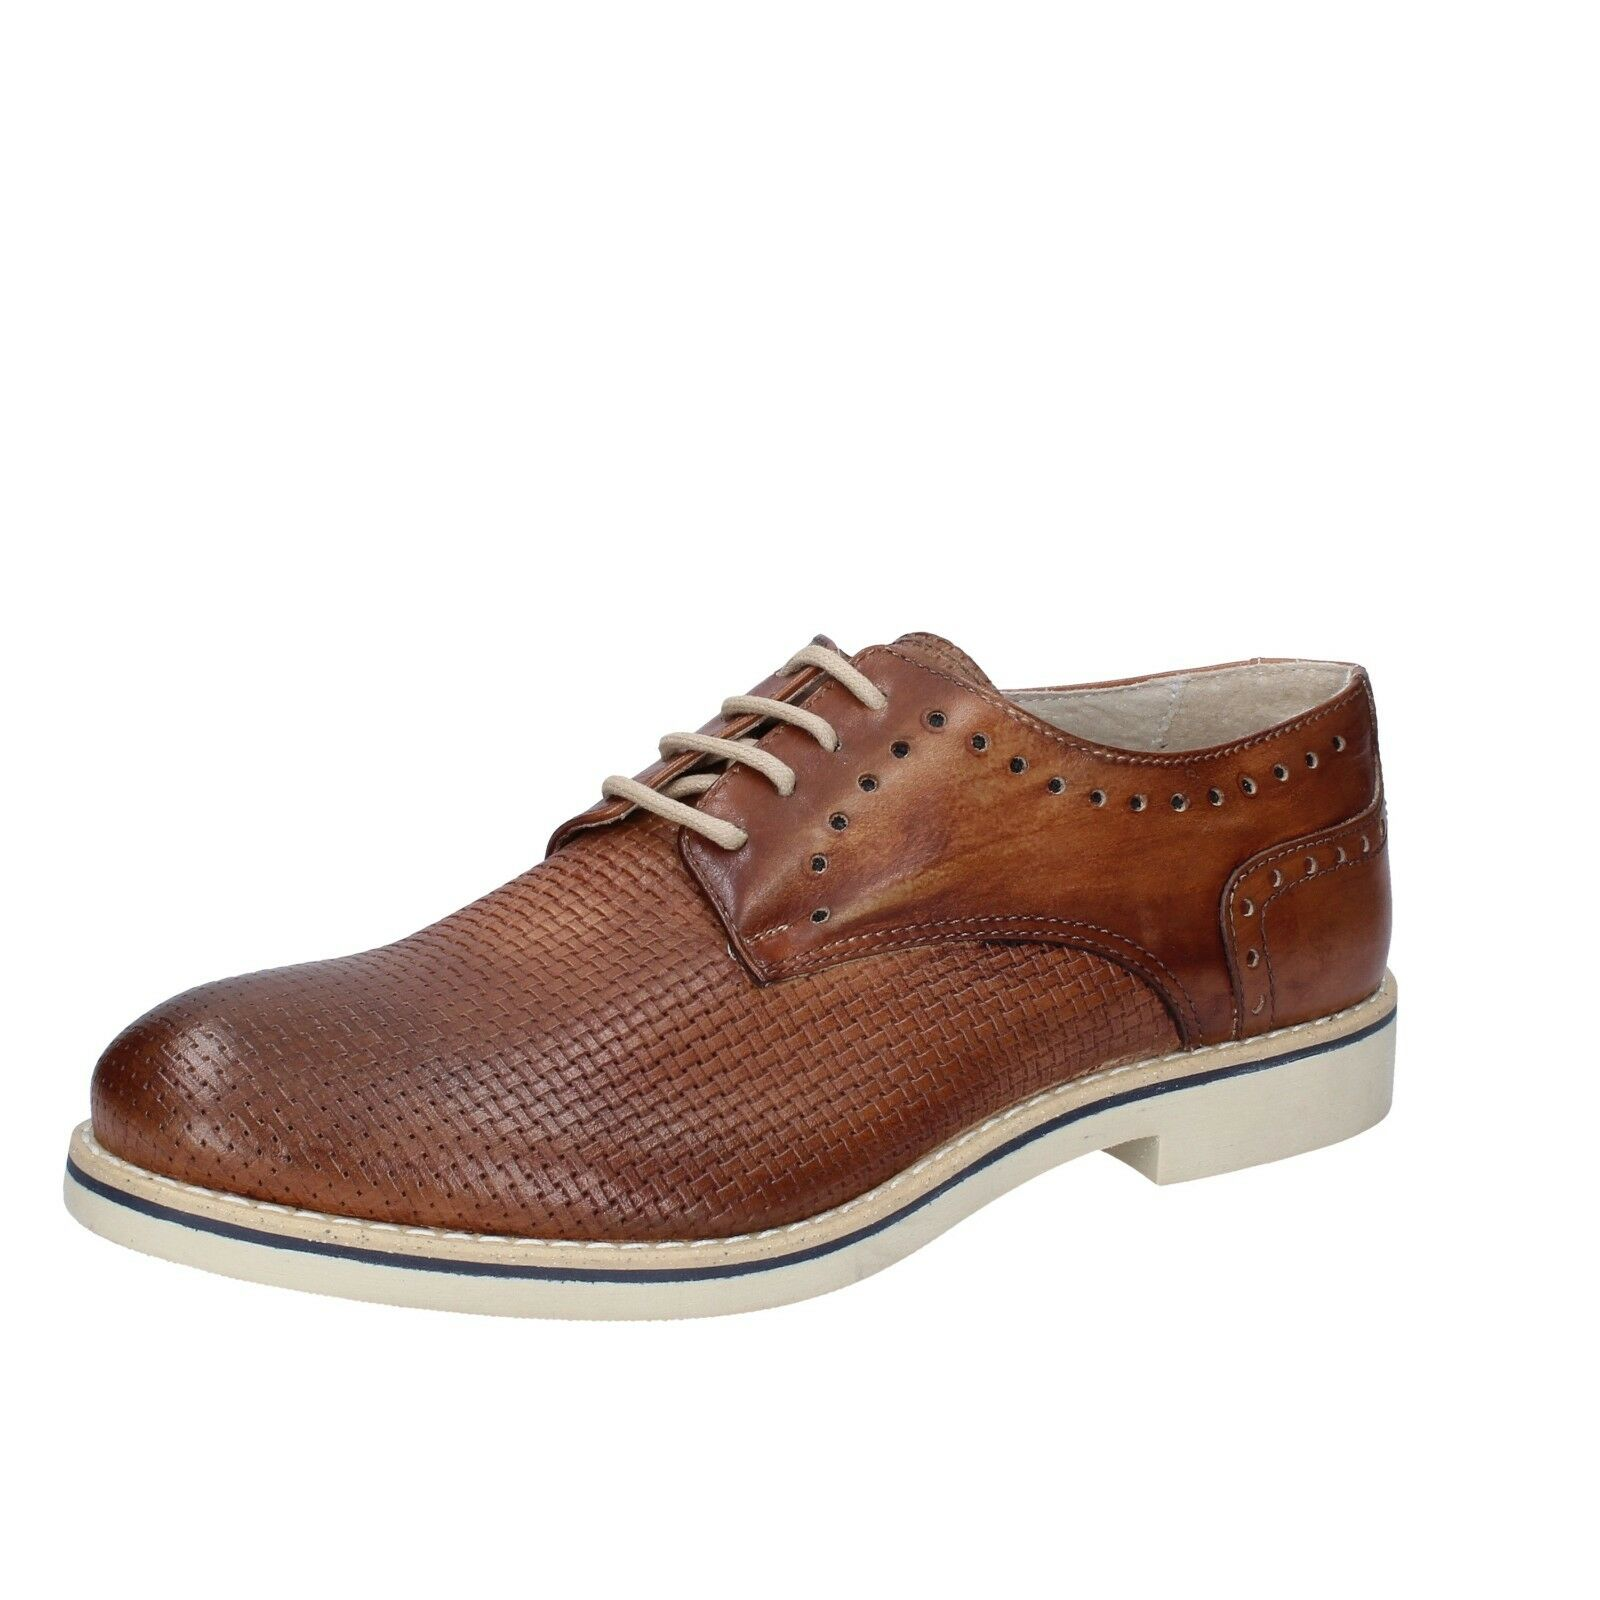 Mens shoes OSSIANI 8 (EU 42) elegant brown leather BT879-42